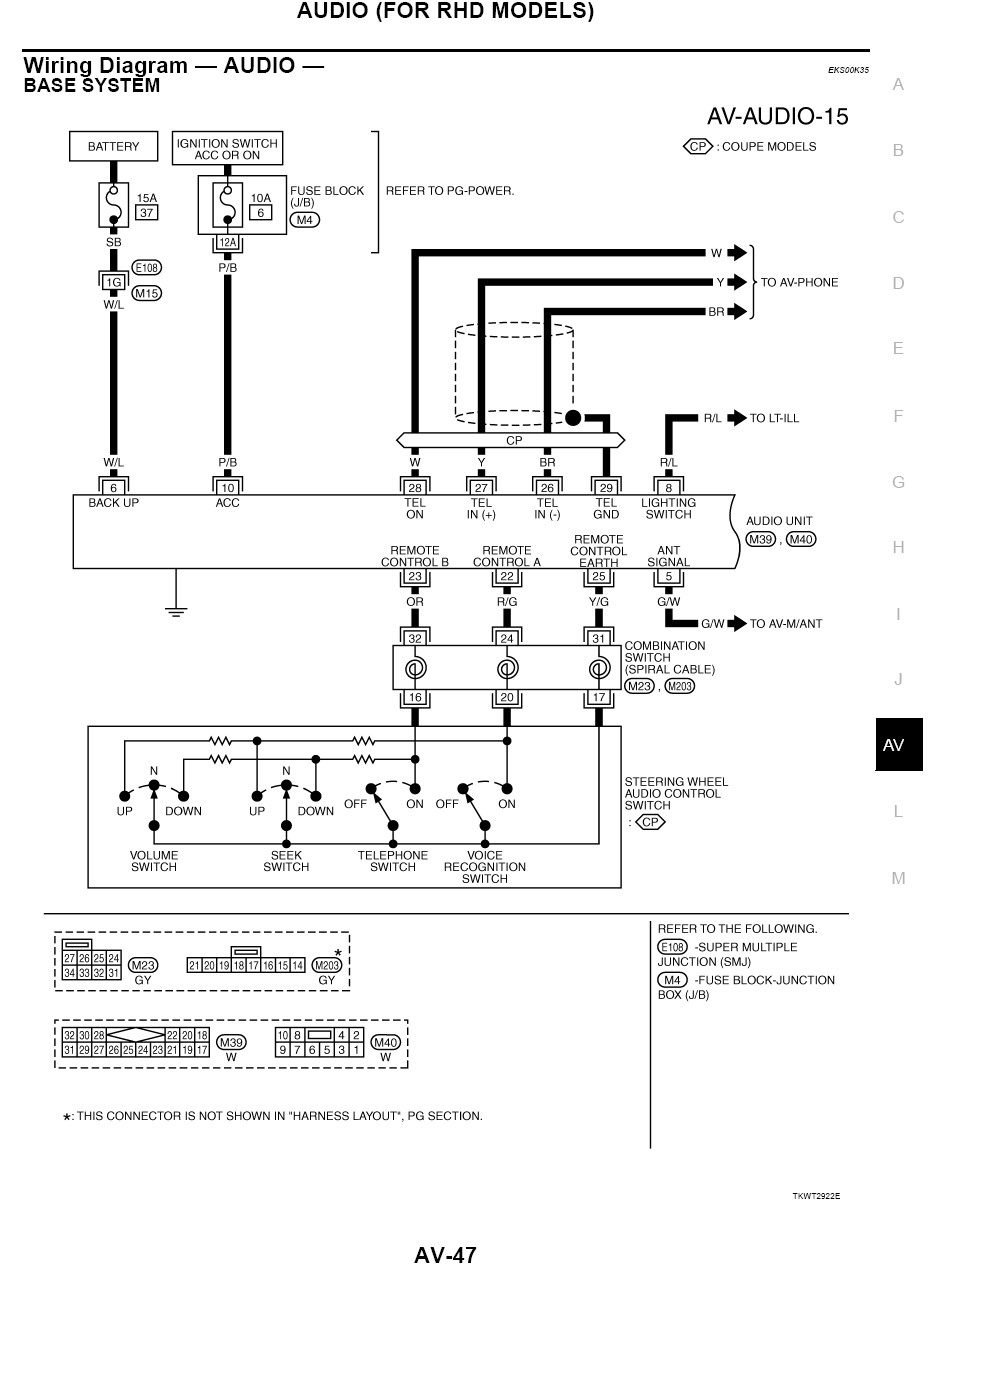 opto 22 wiring diagram